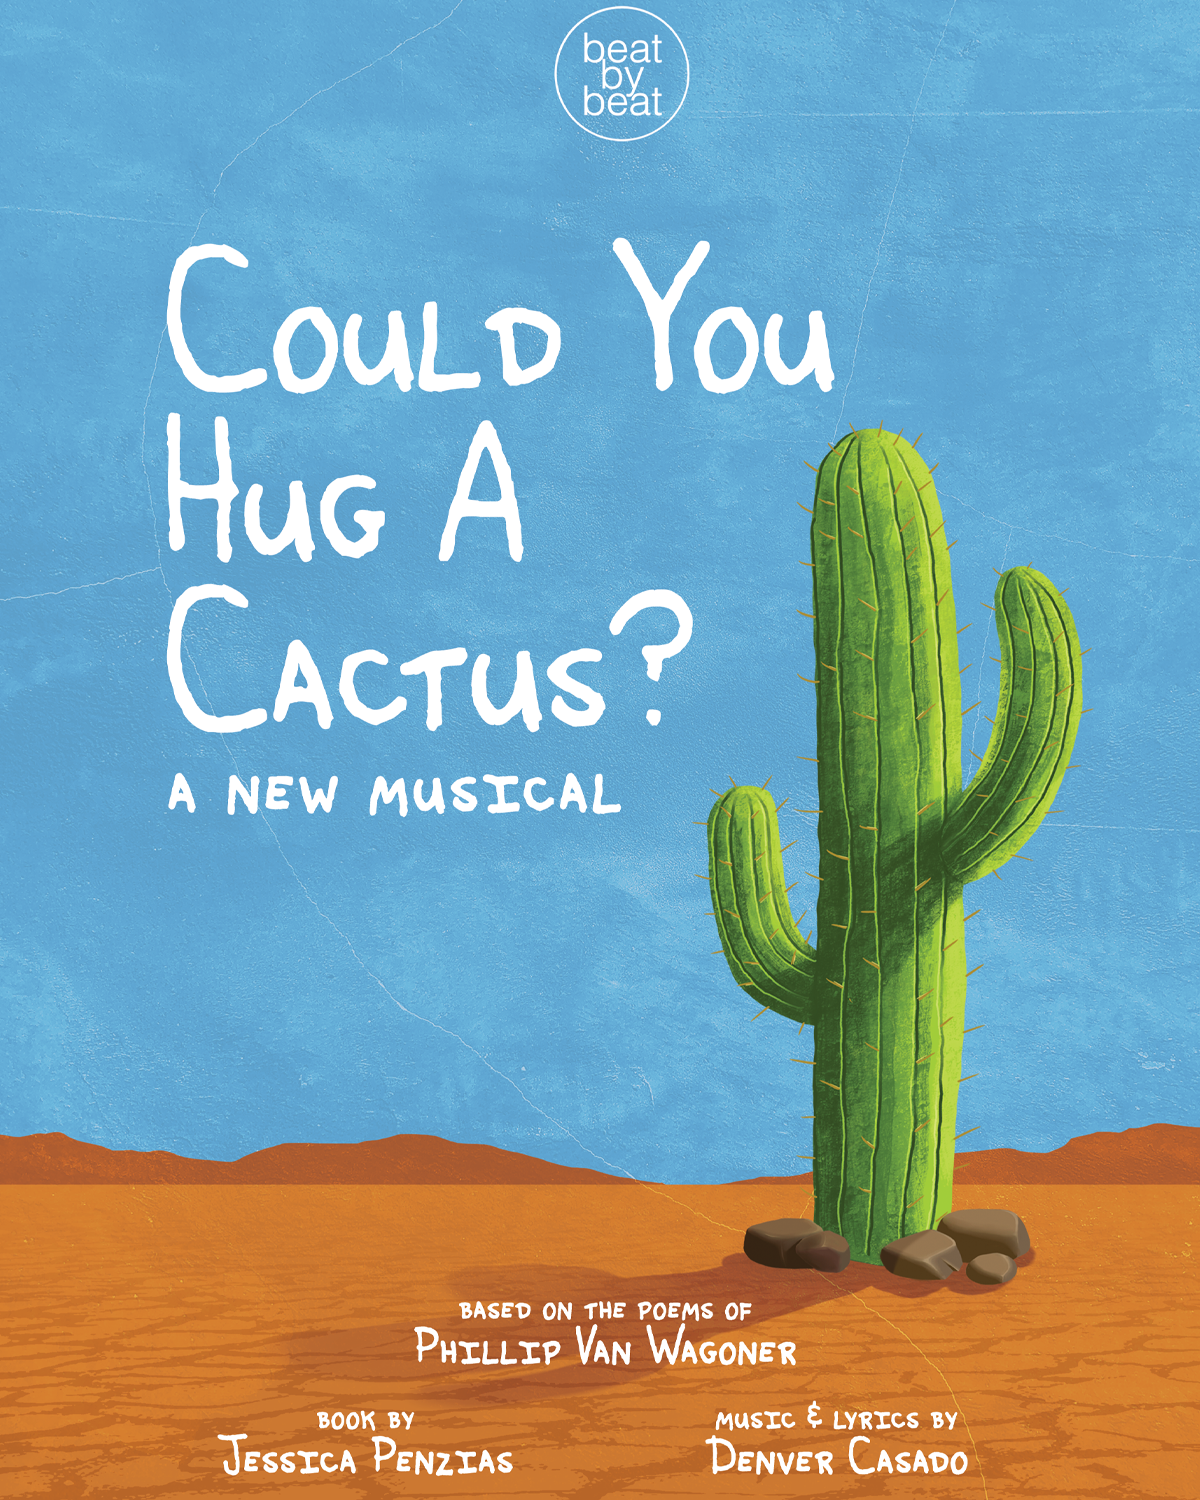 Could You Hug a Cactus? Virtual Musical